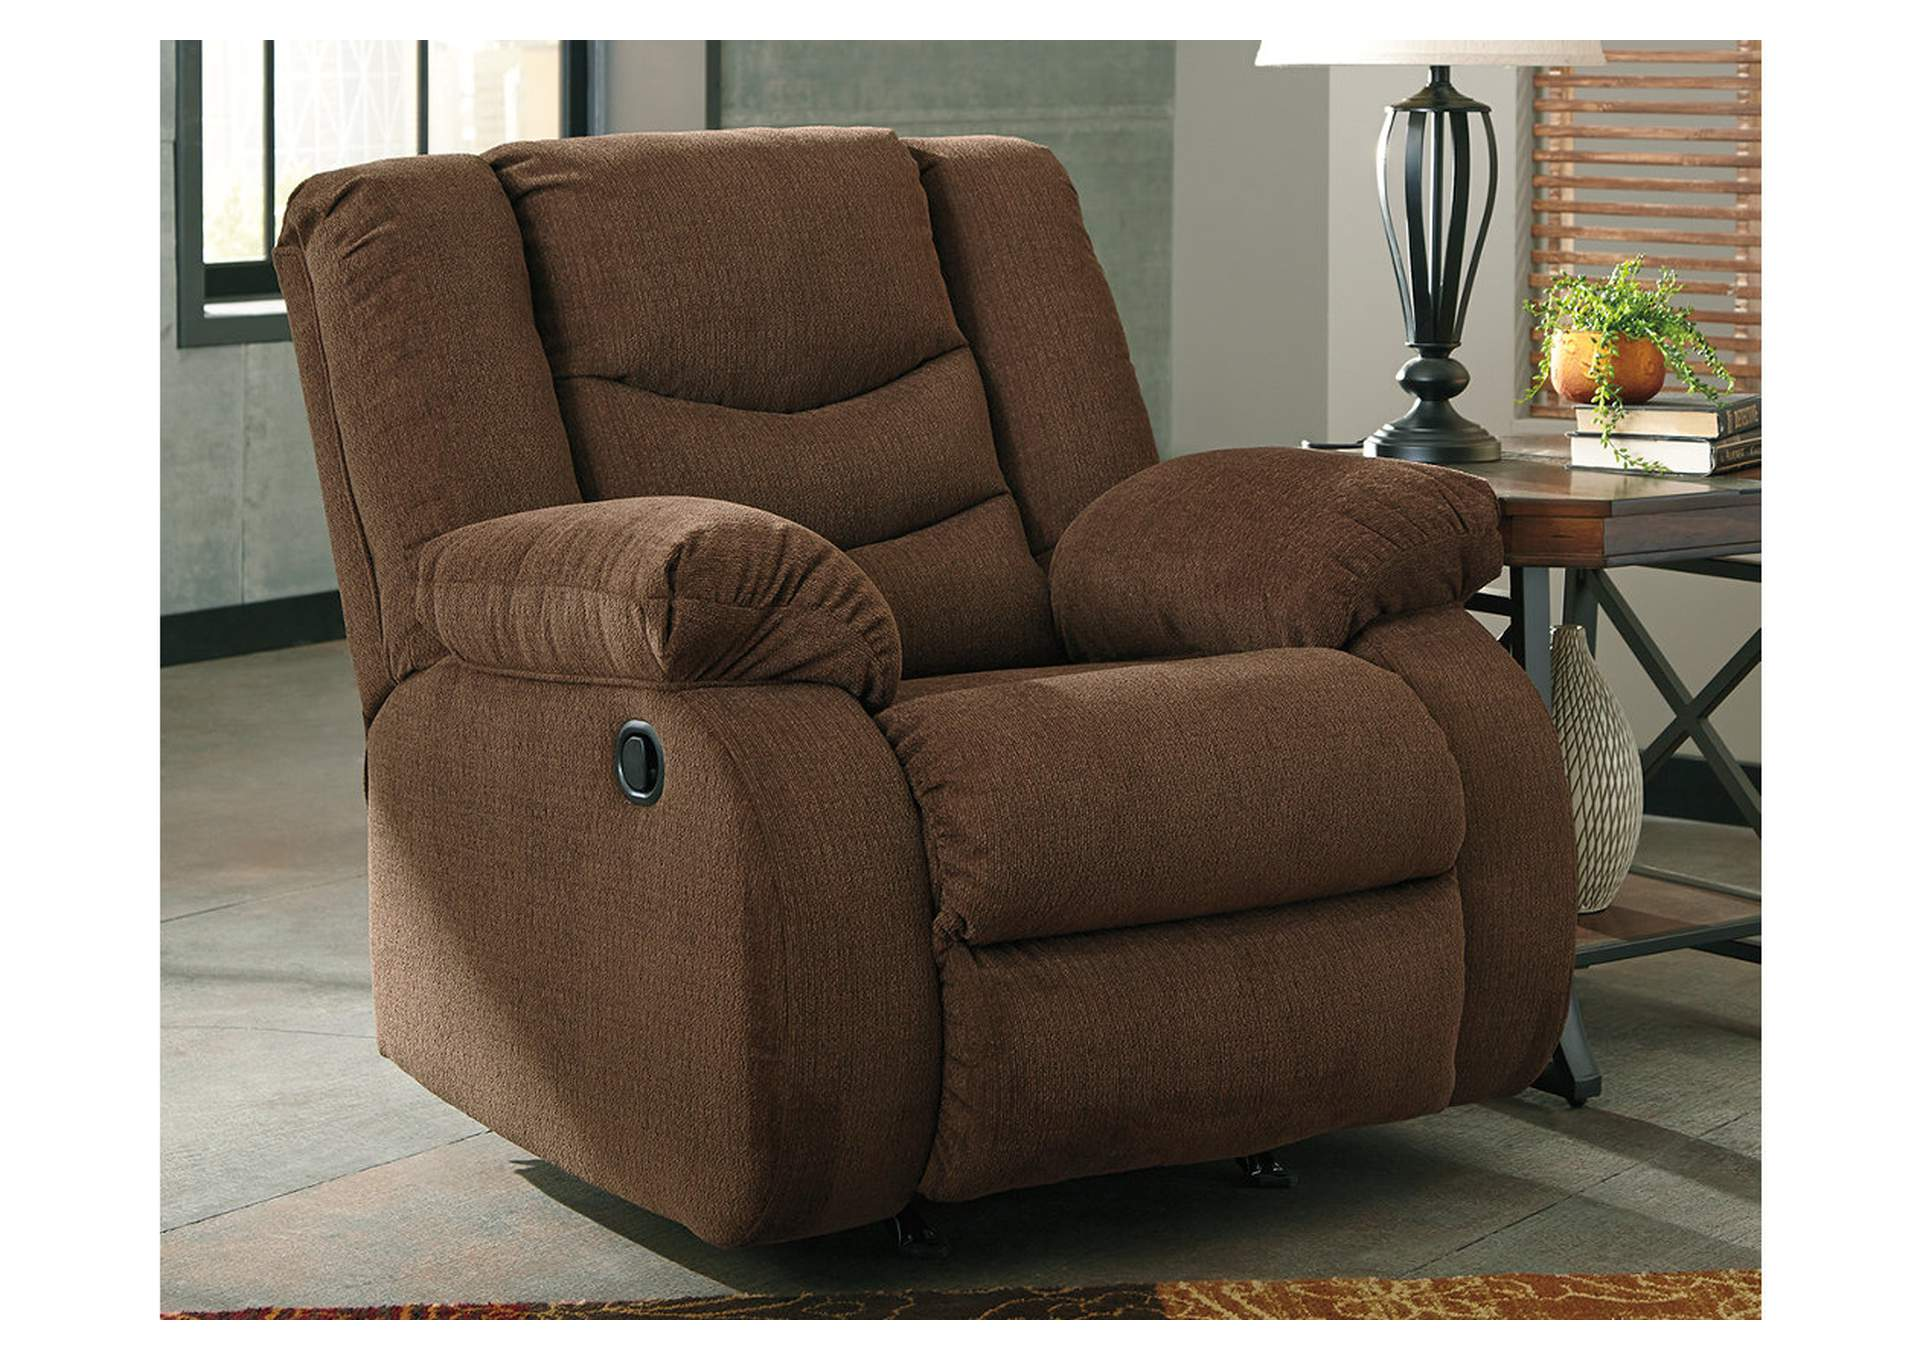 Tulen Chocolate Rocker Recliner,Signature Design By Ashley